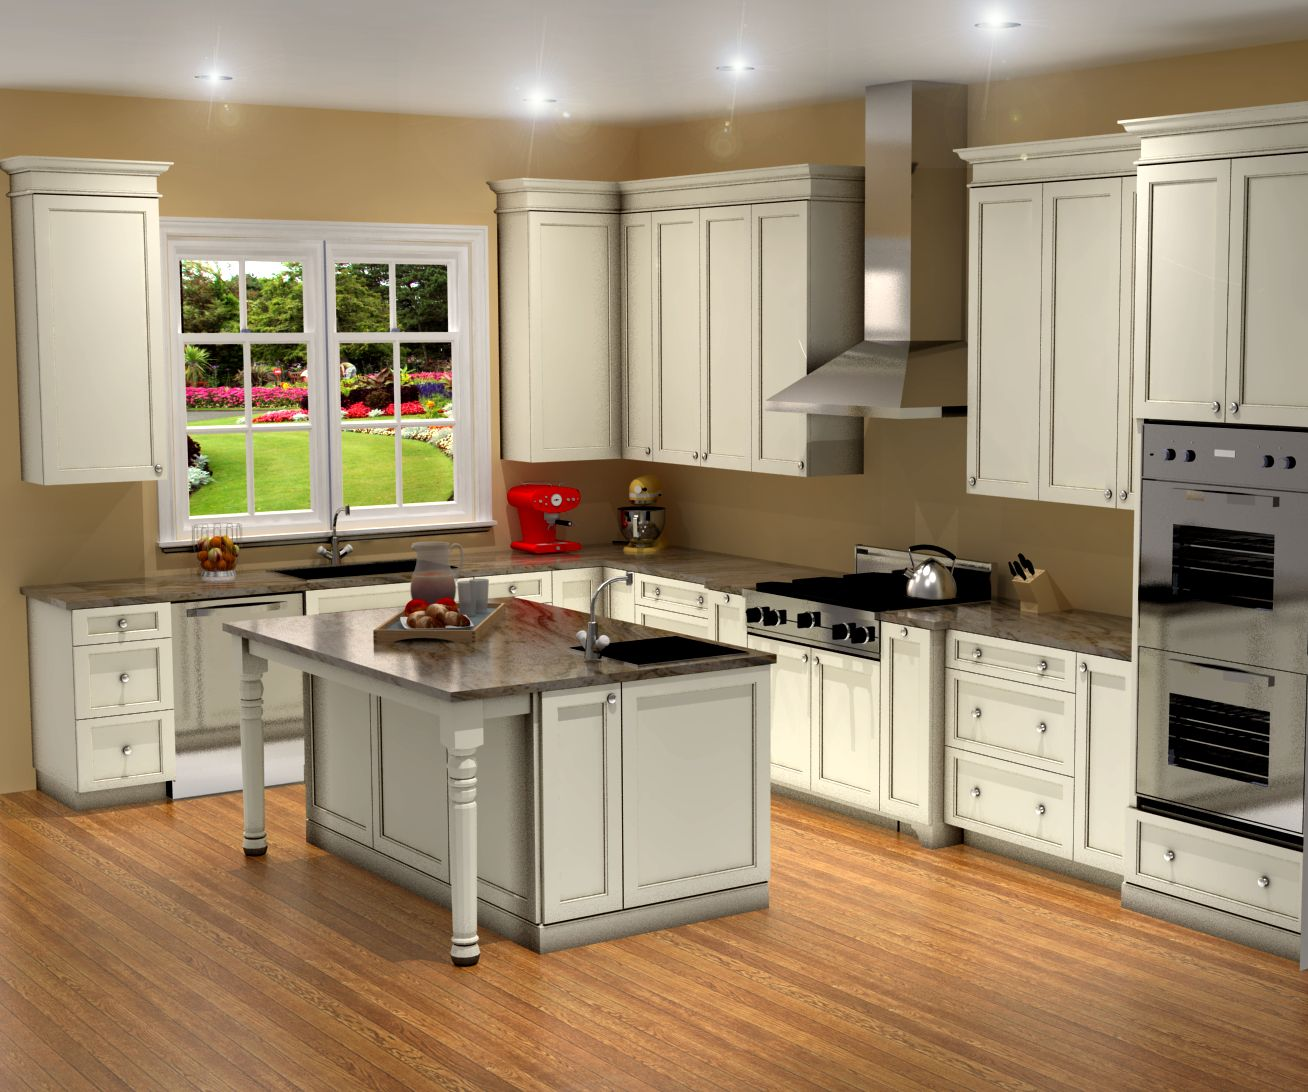 Traditional white kitchen design 3d rendering nick for Kitchen designs and layout